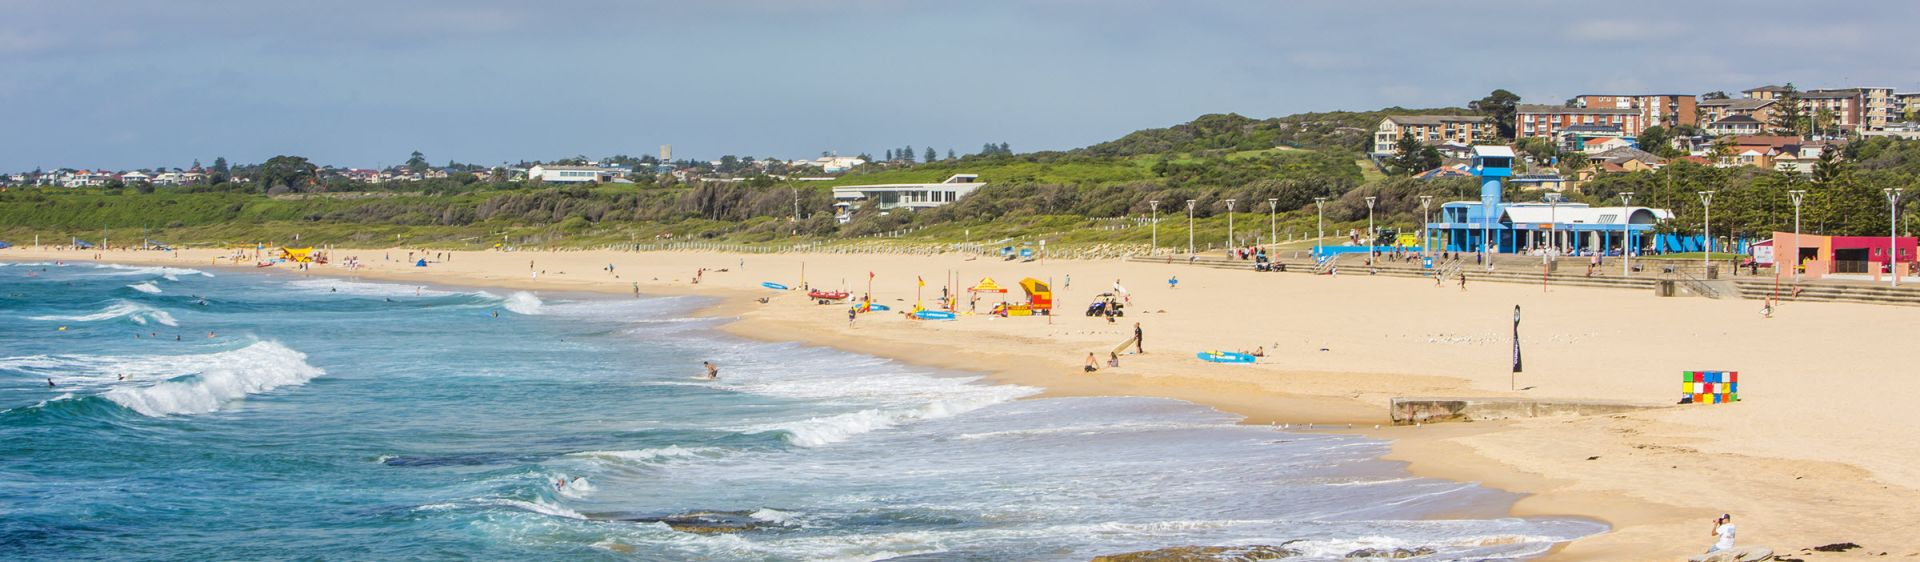 People entering the surf at Maroubra Beach, Maroubra